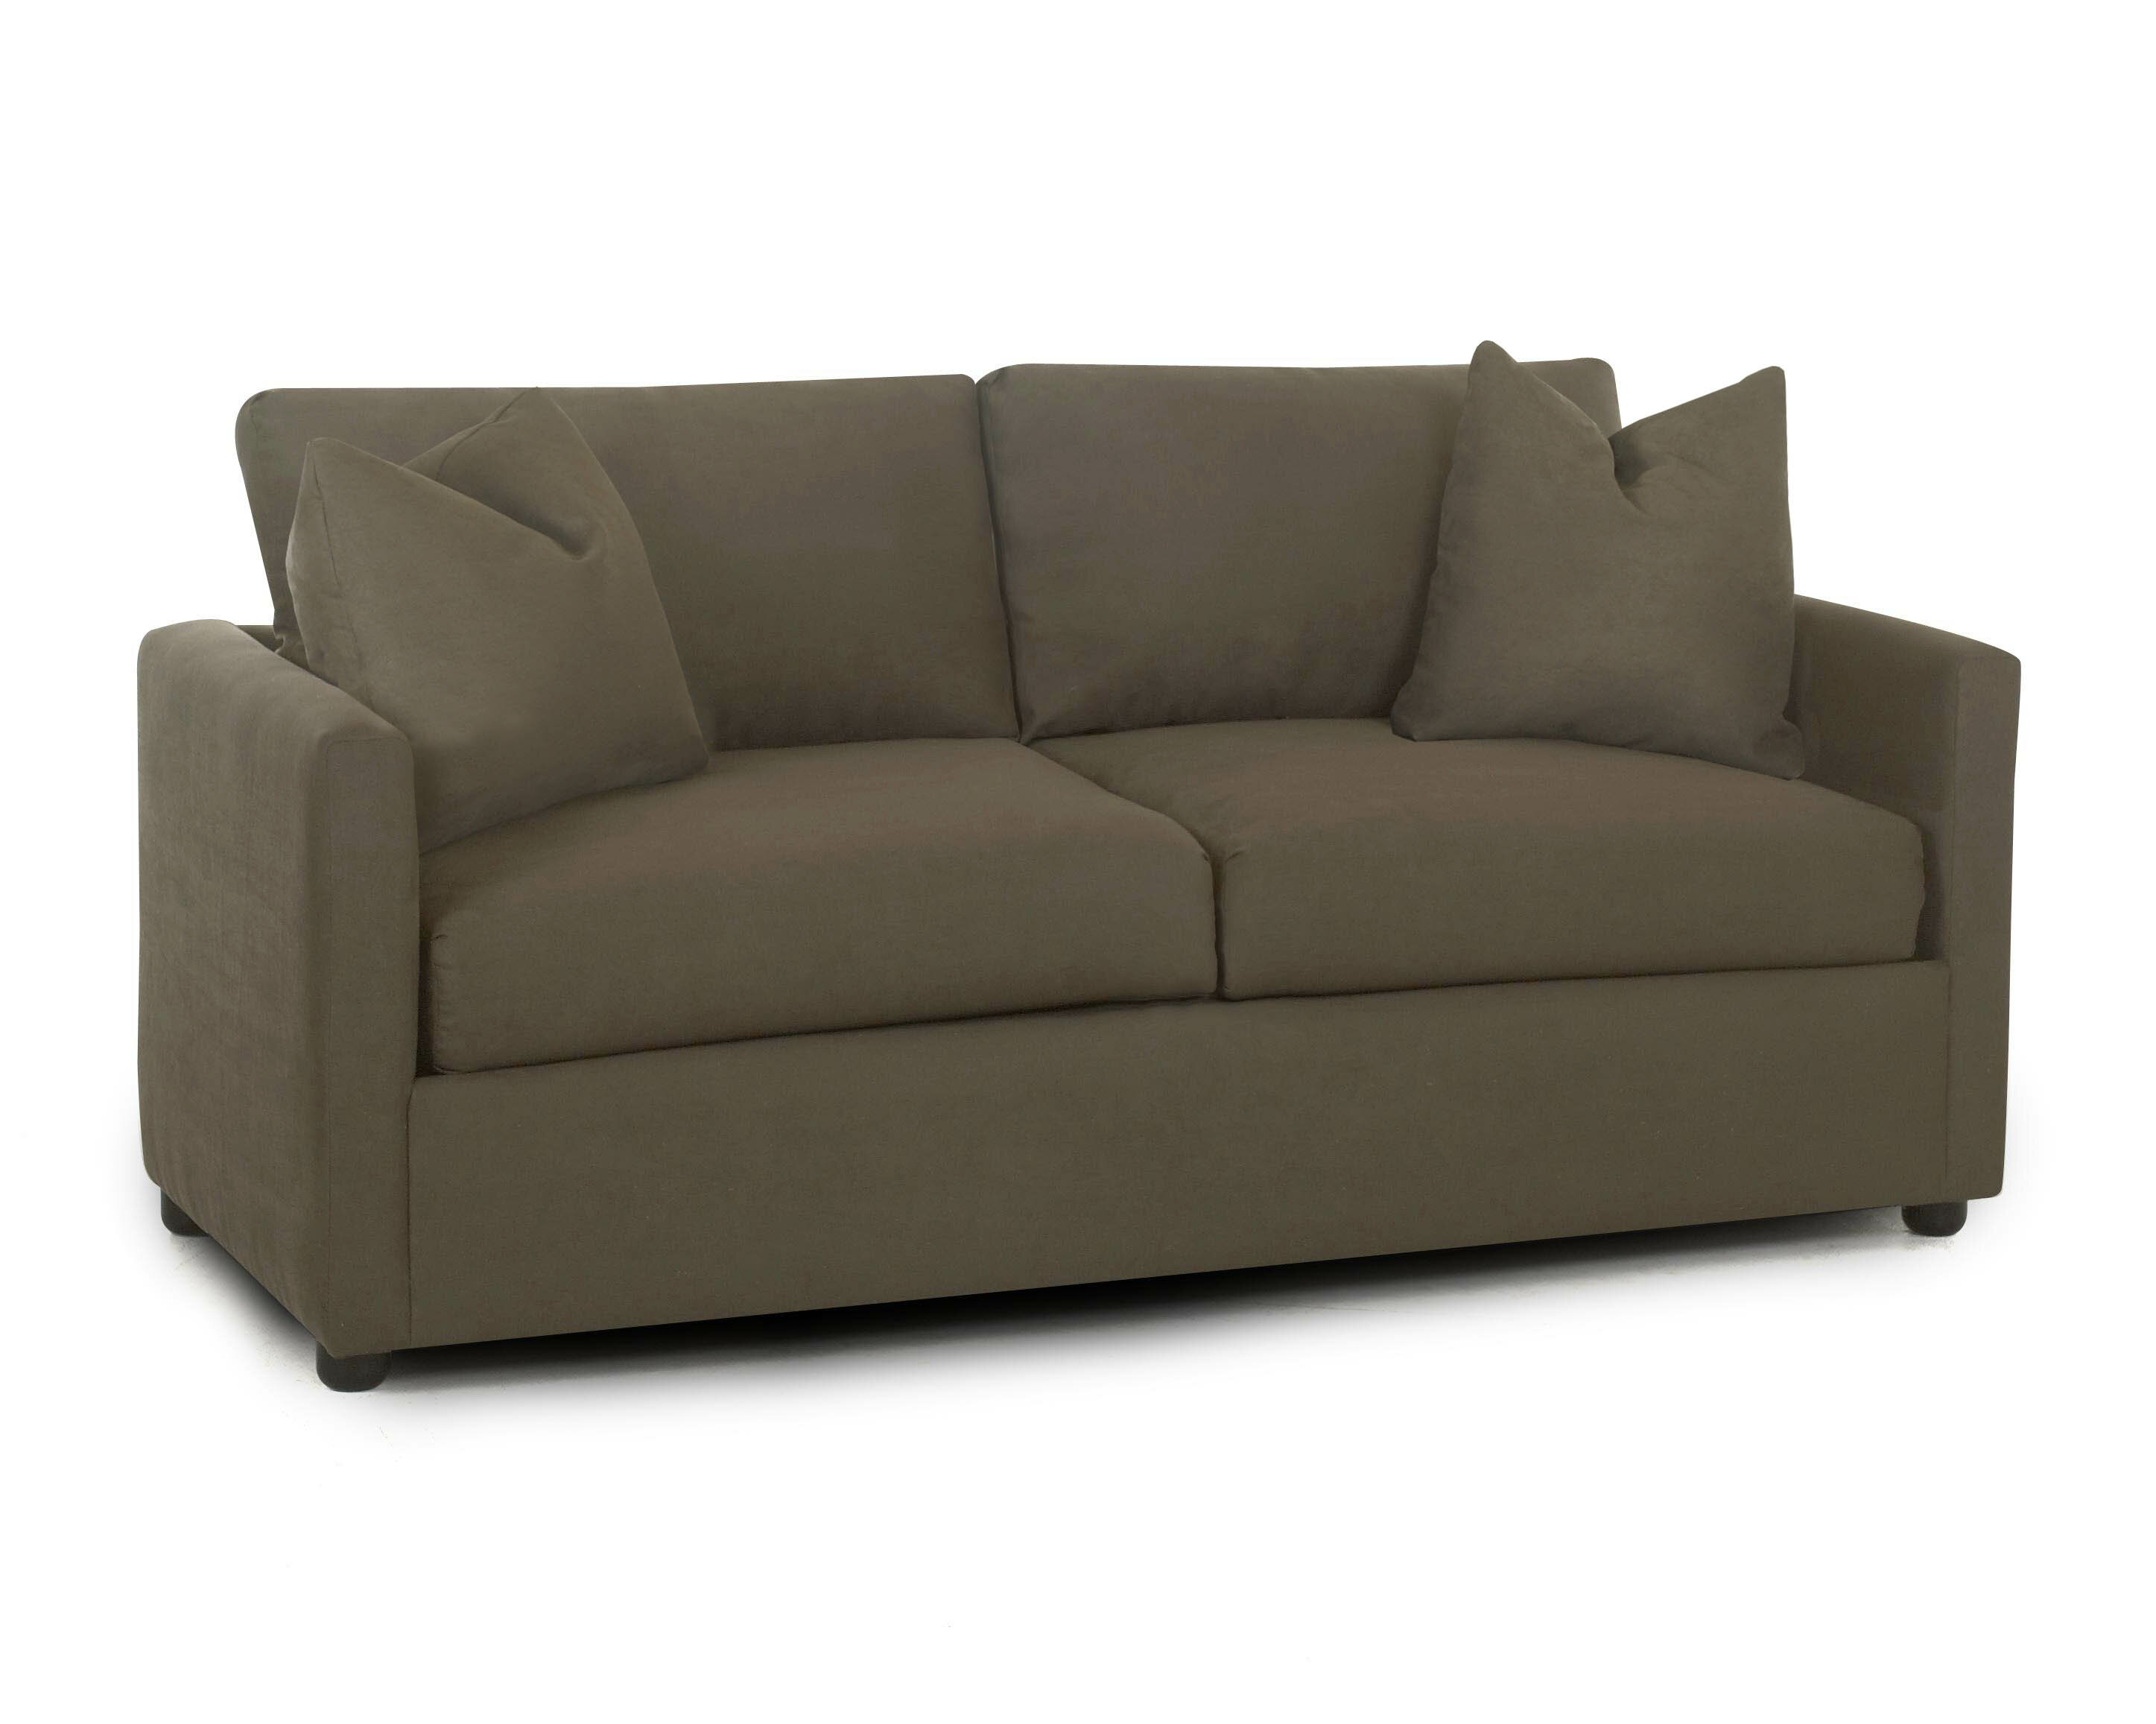 Darby home co greenlaw jacobs enso memory foam regular sleeper loveseat wayfair